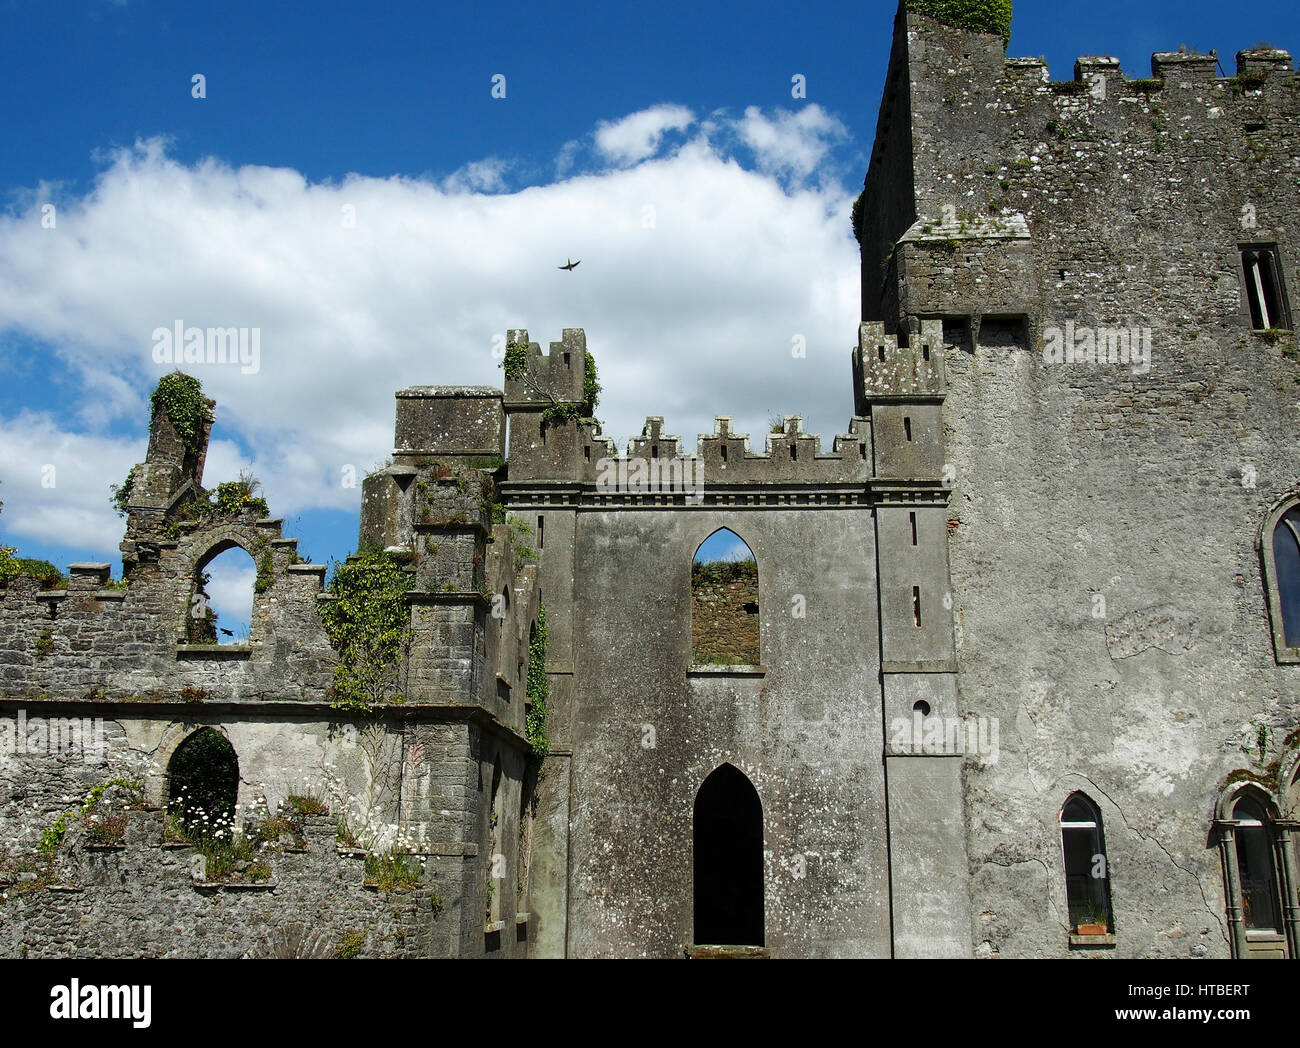 Leap castle is one of the most haunted castles in Ireland. - Stock Image